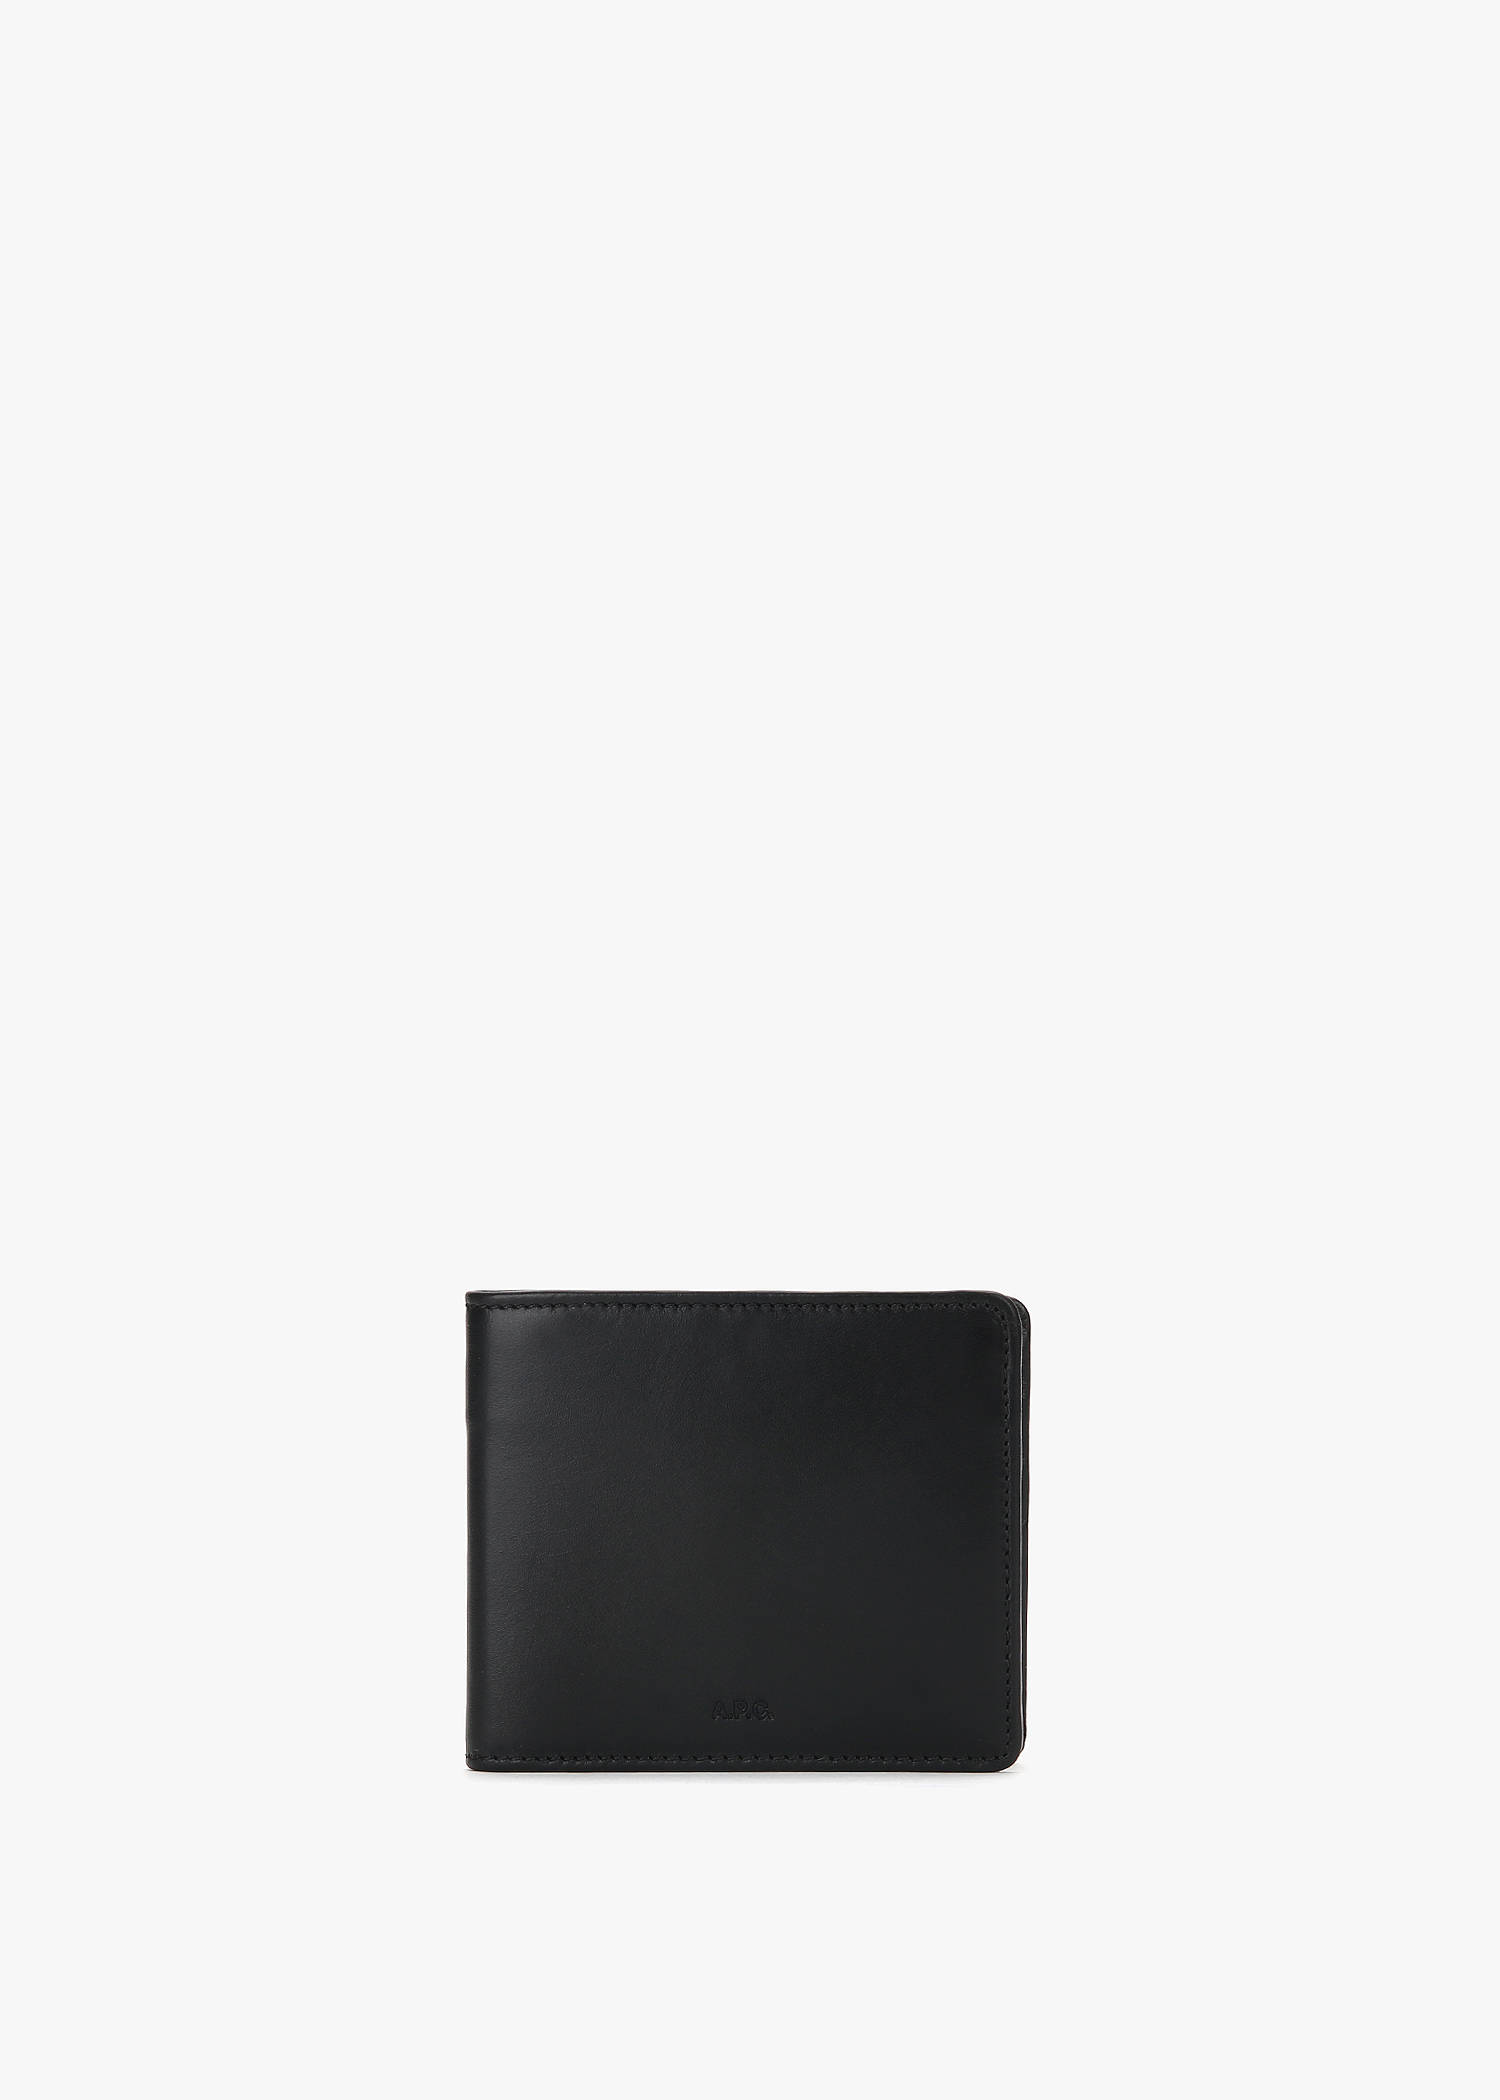 A.P.C. Aly Wallet in Black